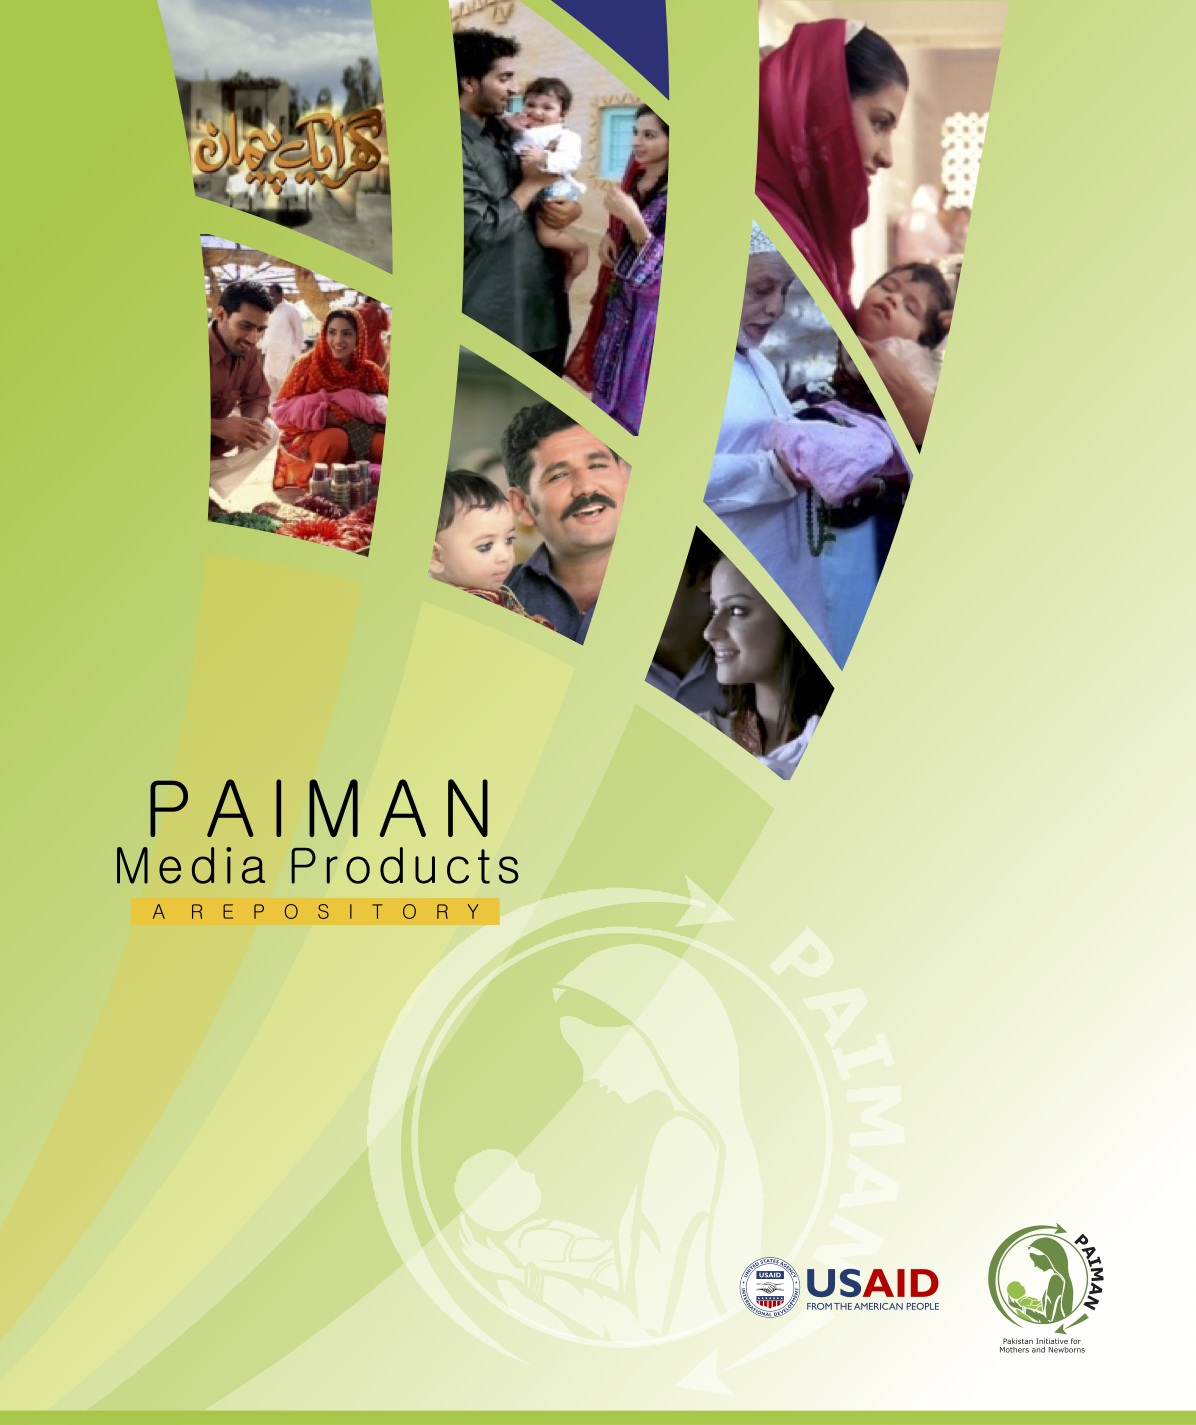 PAIMAN Media Products Repository